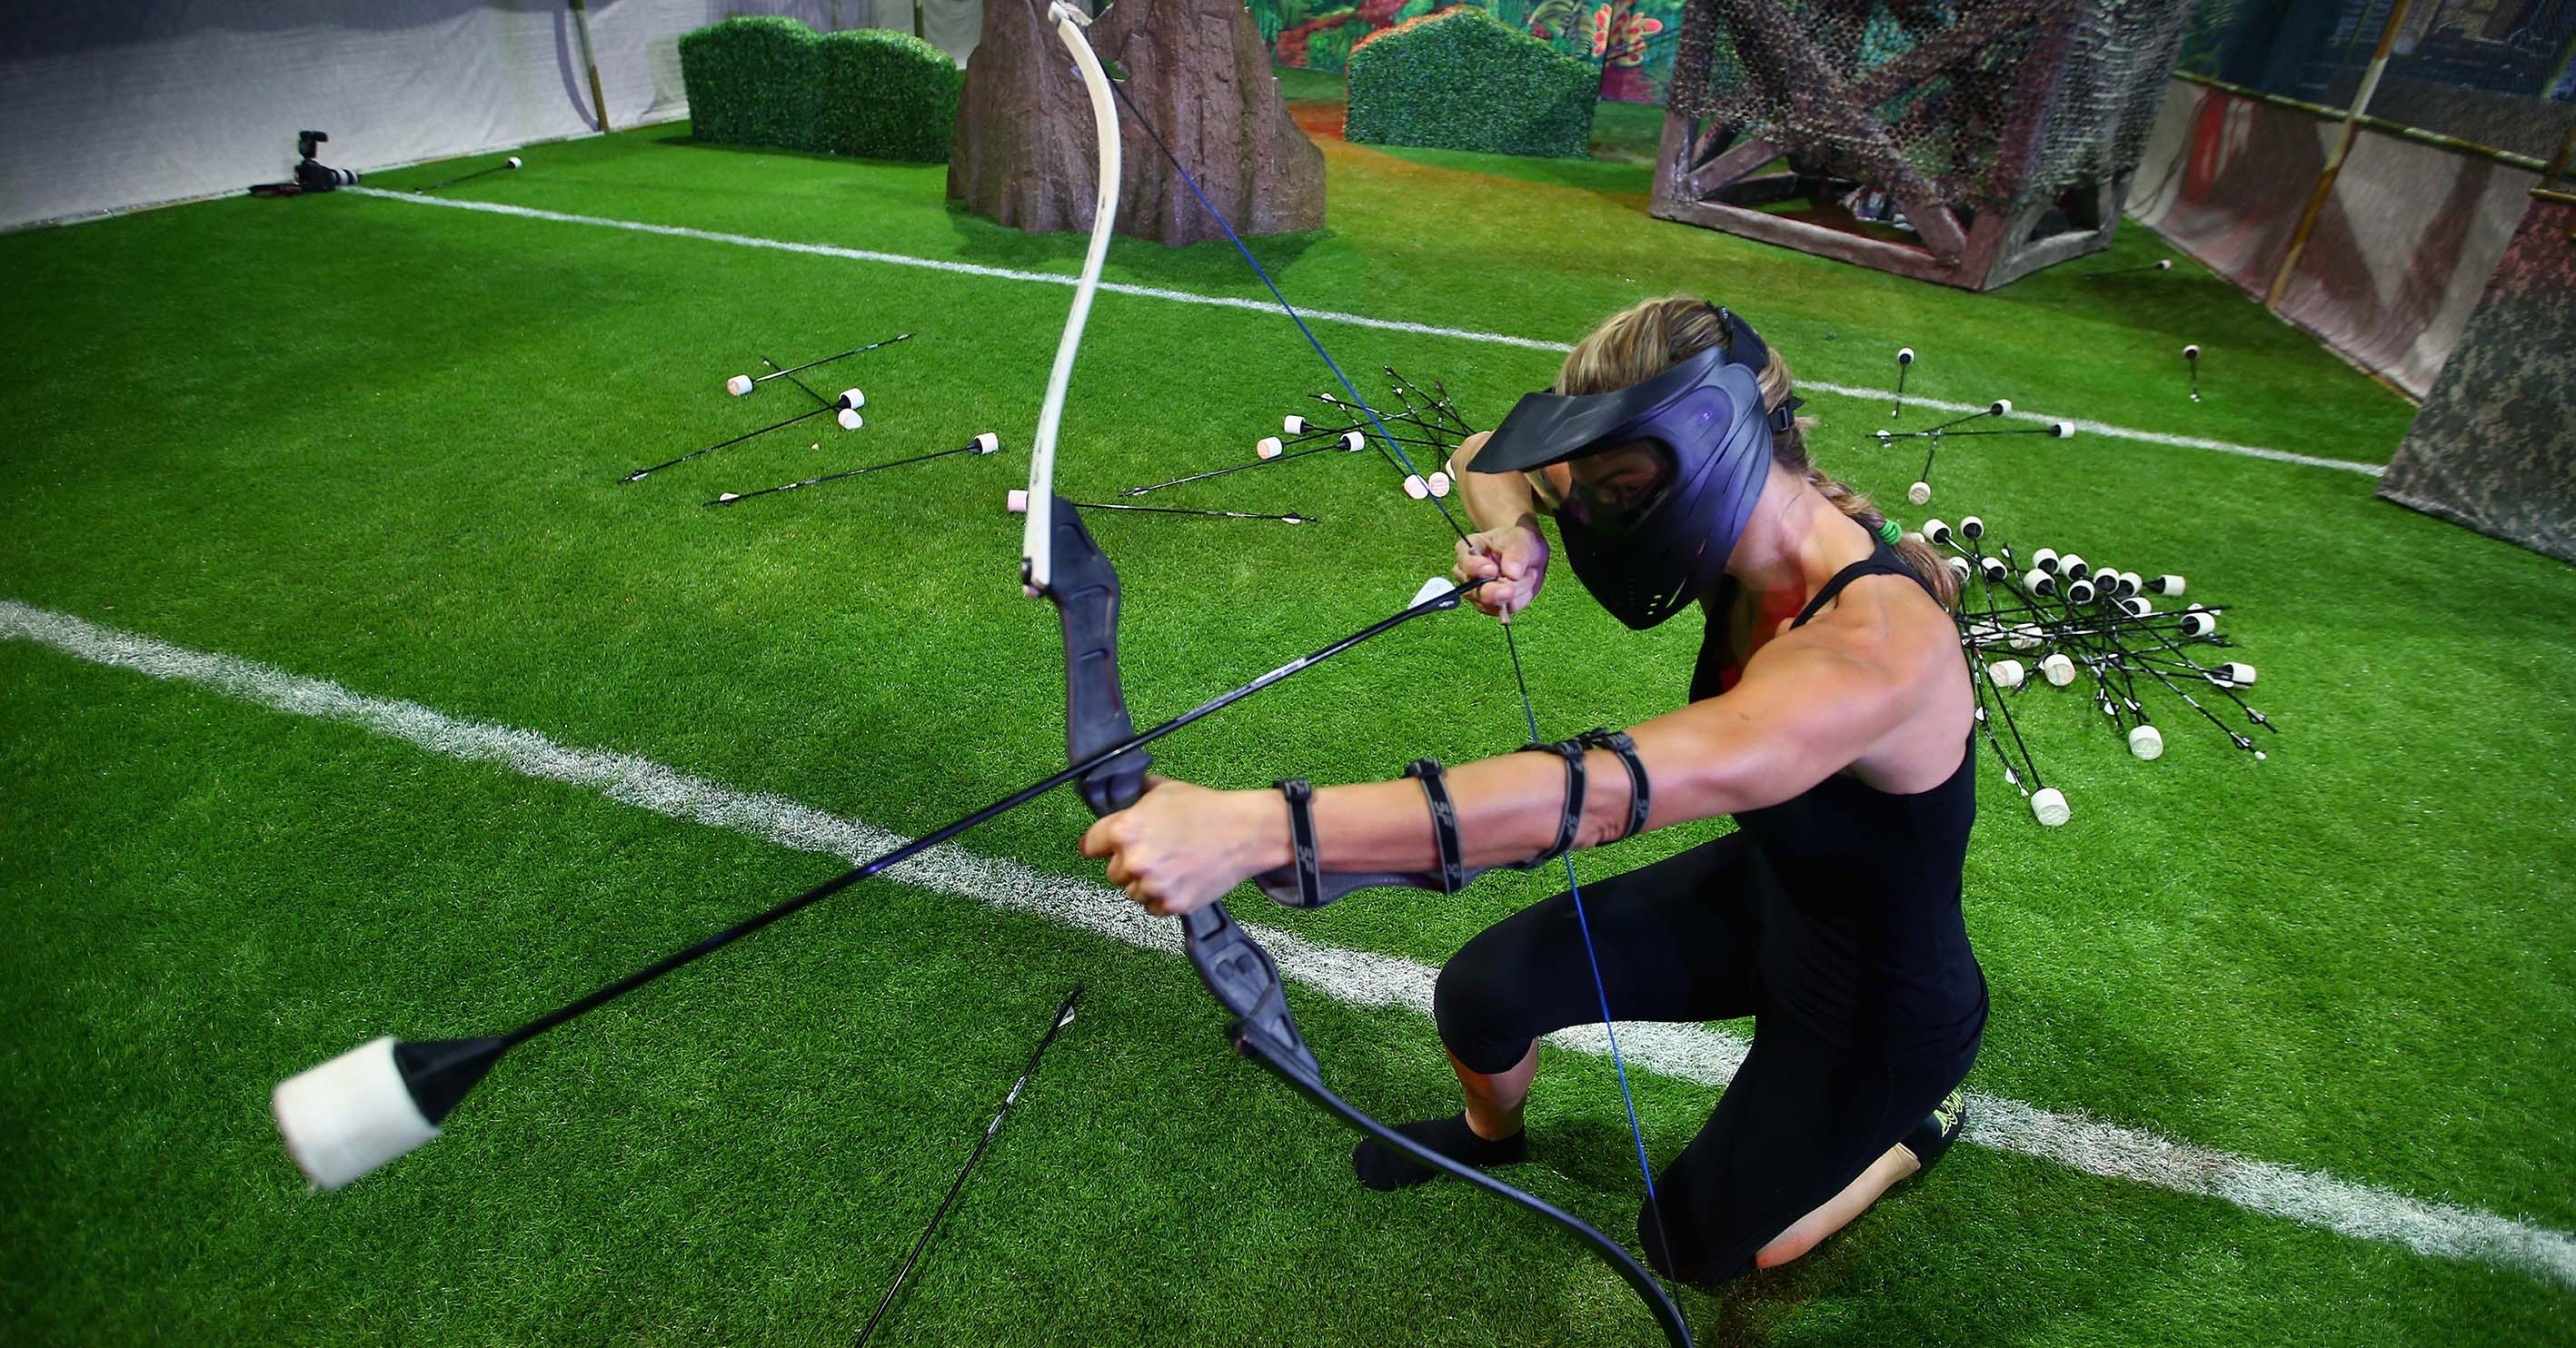 indoor activities in dubai - archery tag at flip out